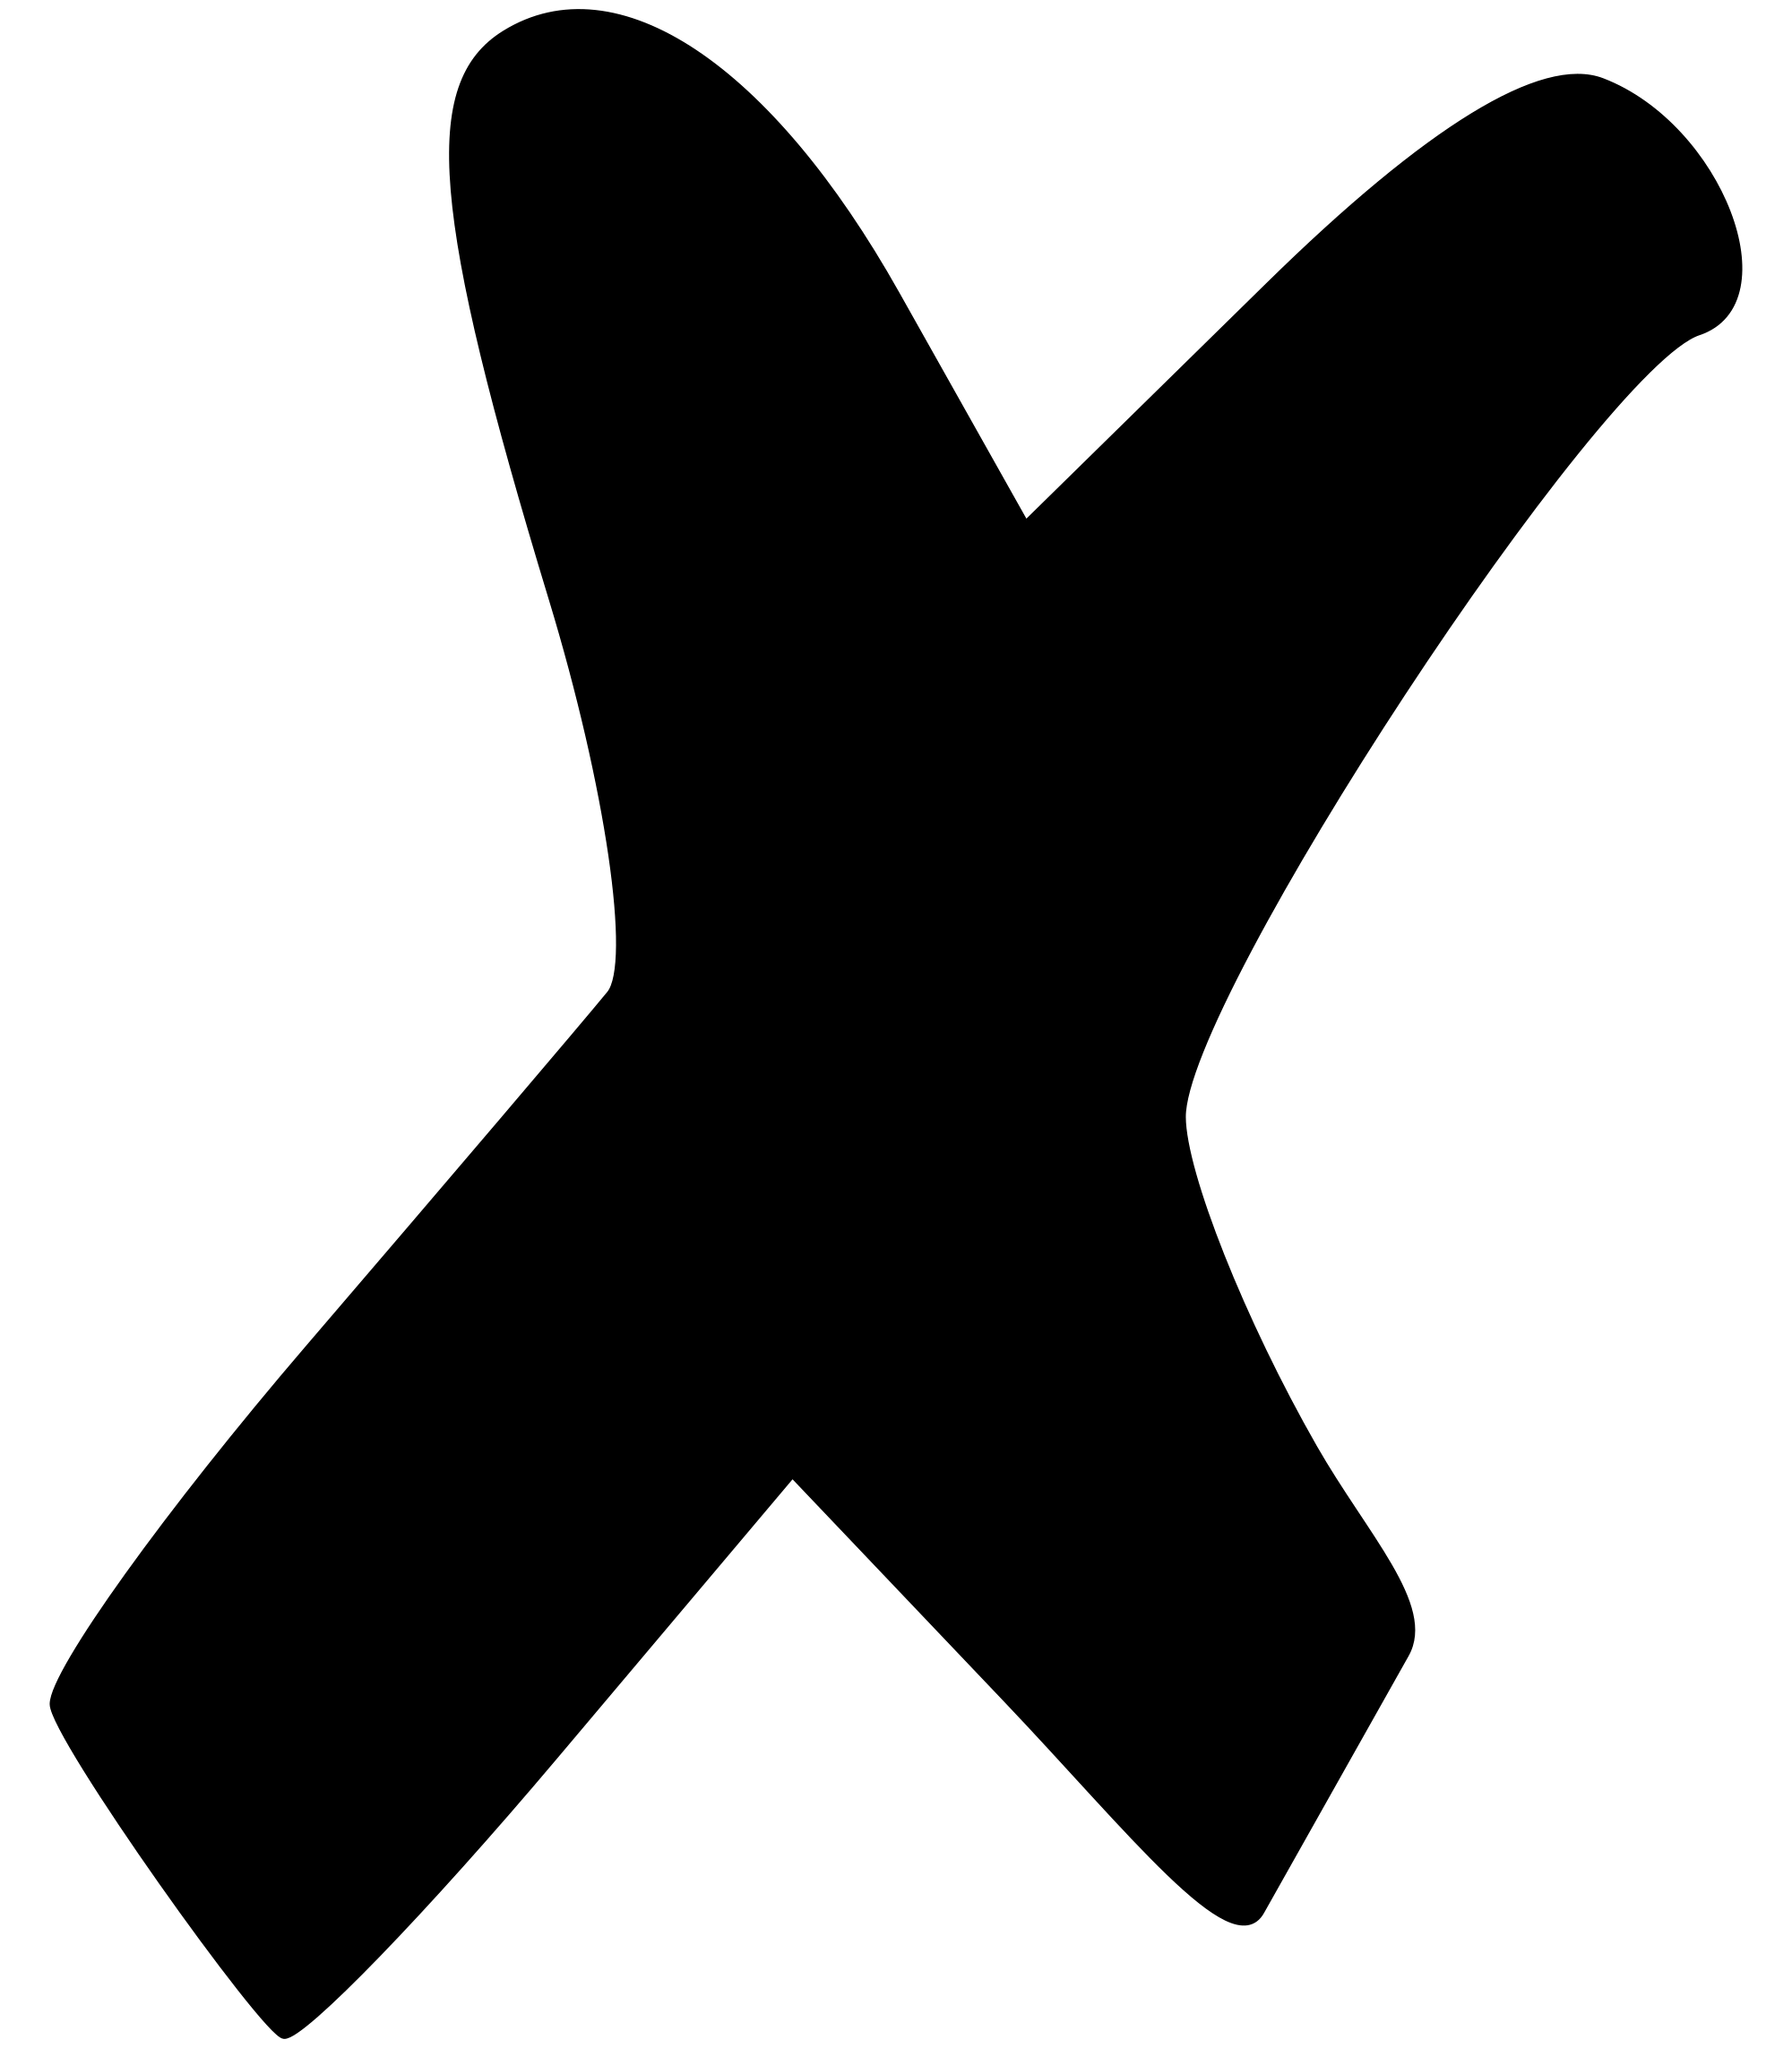 Black x png. File svg wikimedia commons